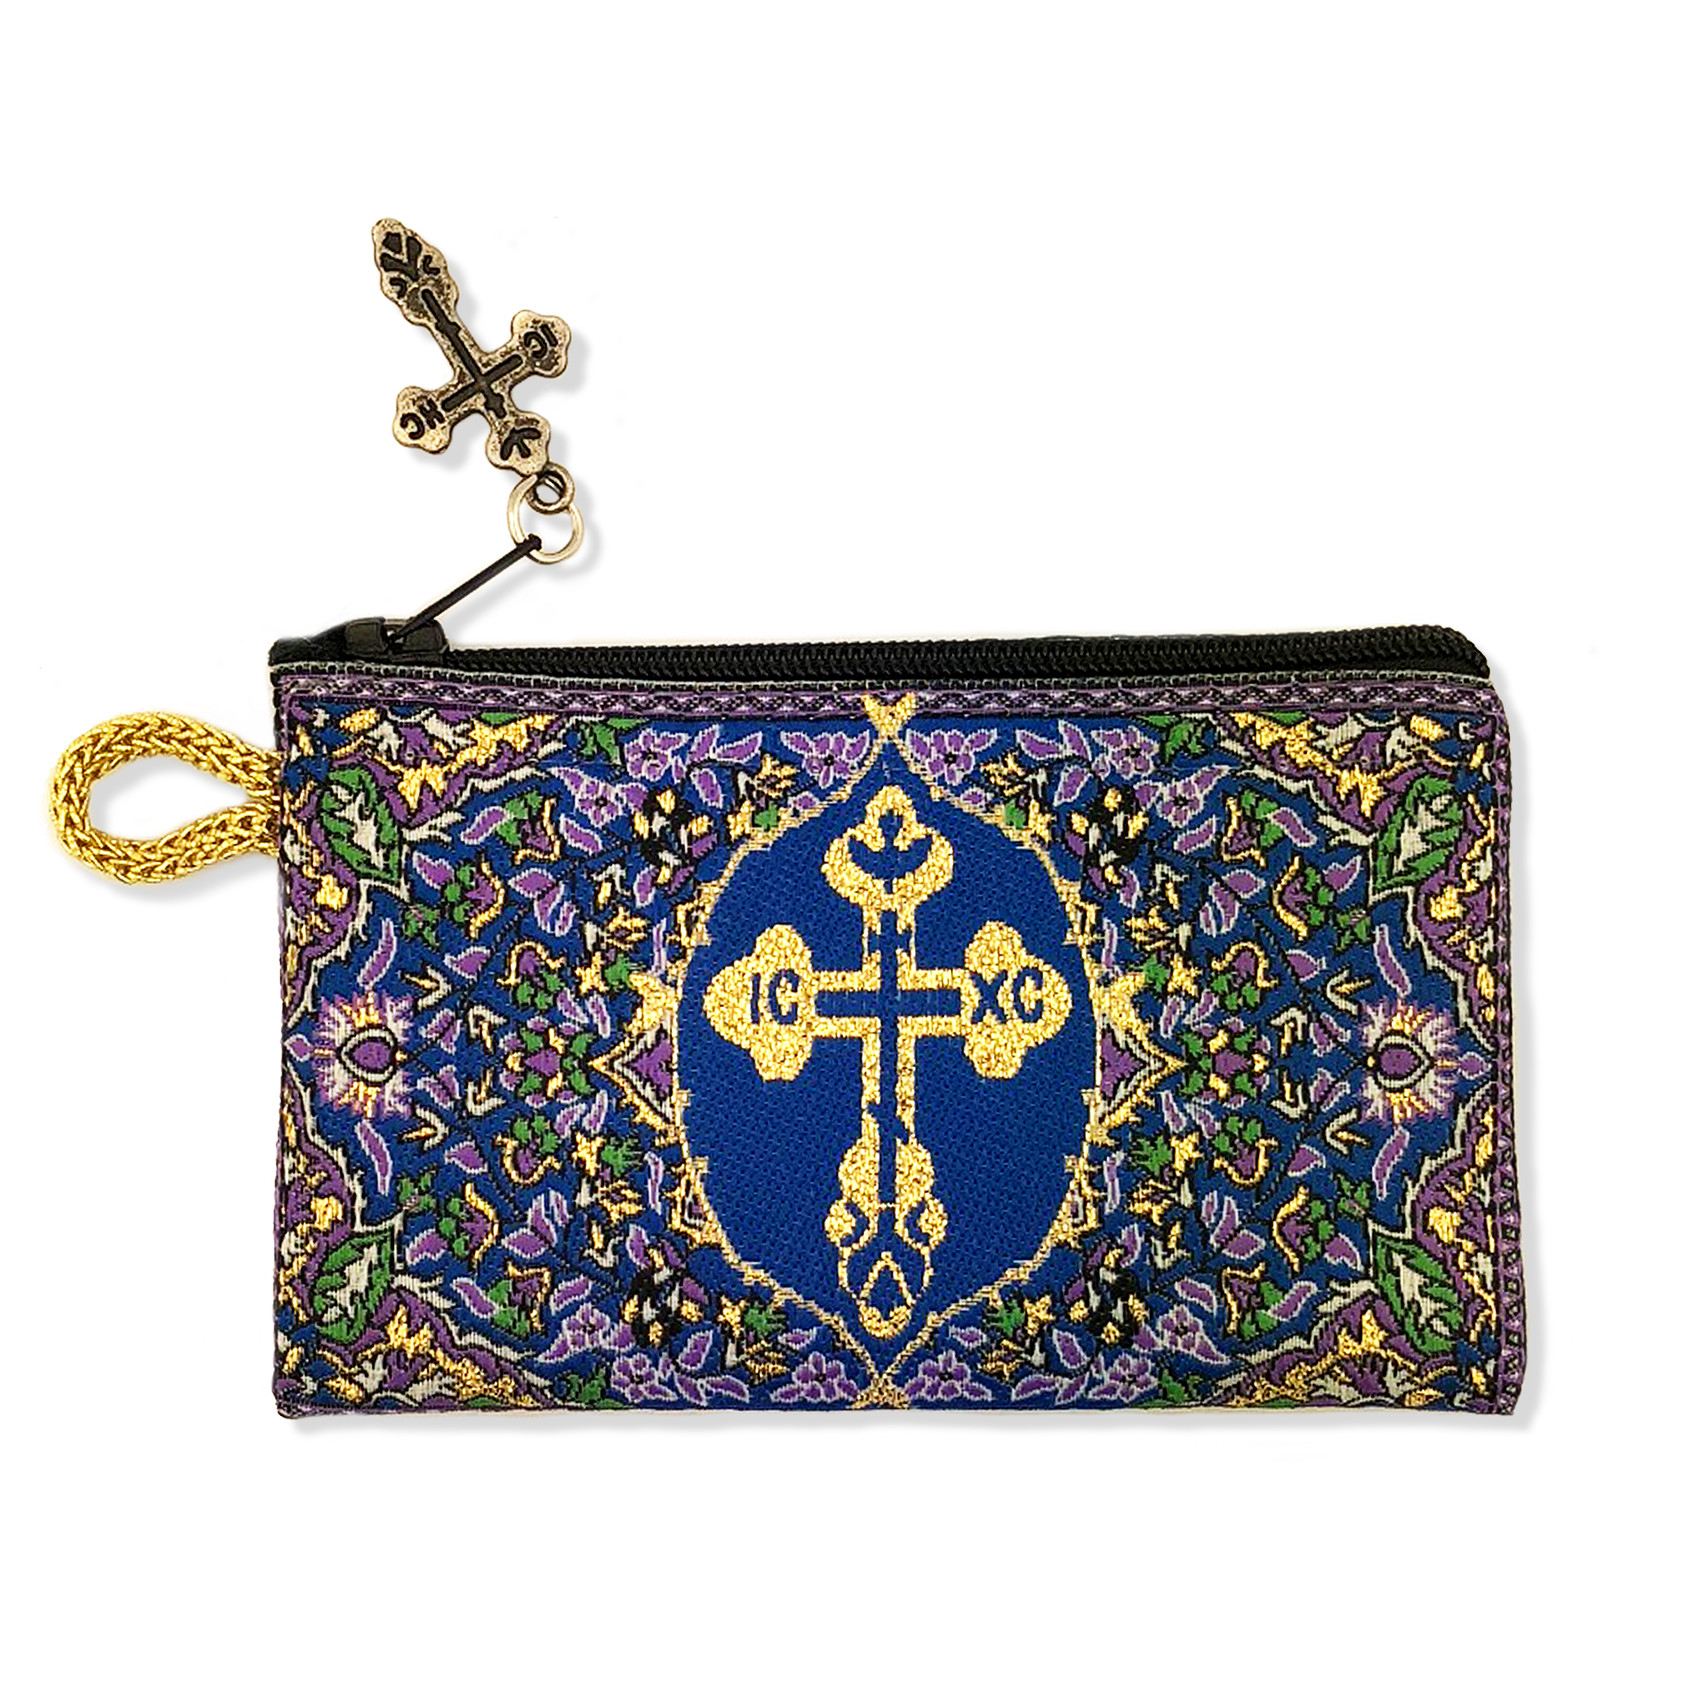 Cp 18 Byzantine Cross Rosary Prayer Beads Tapestry Keepsake Holder Pouch Purple Blue Gold 4 3 4 Inch Width